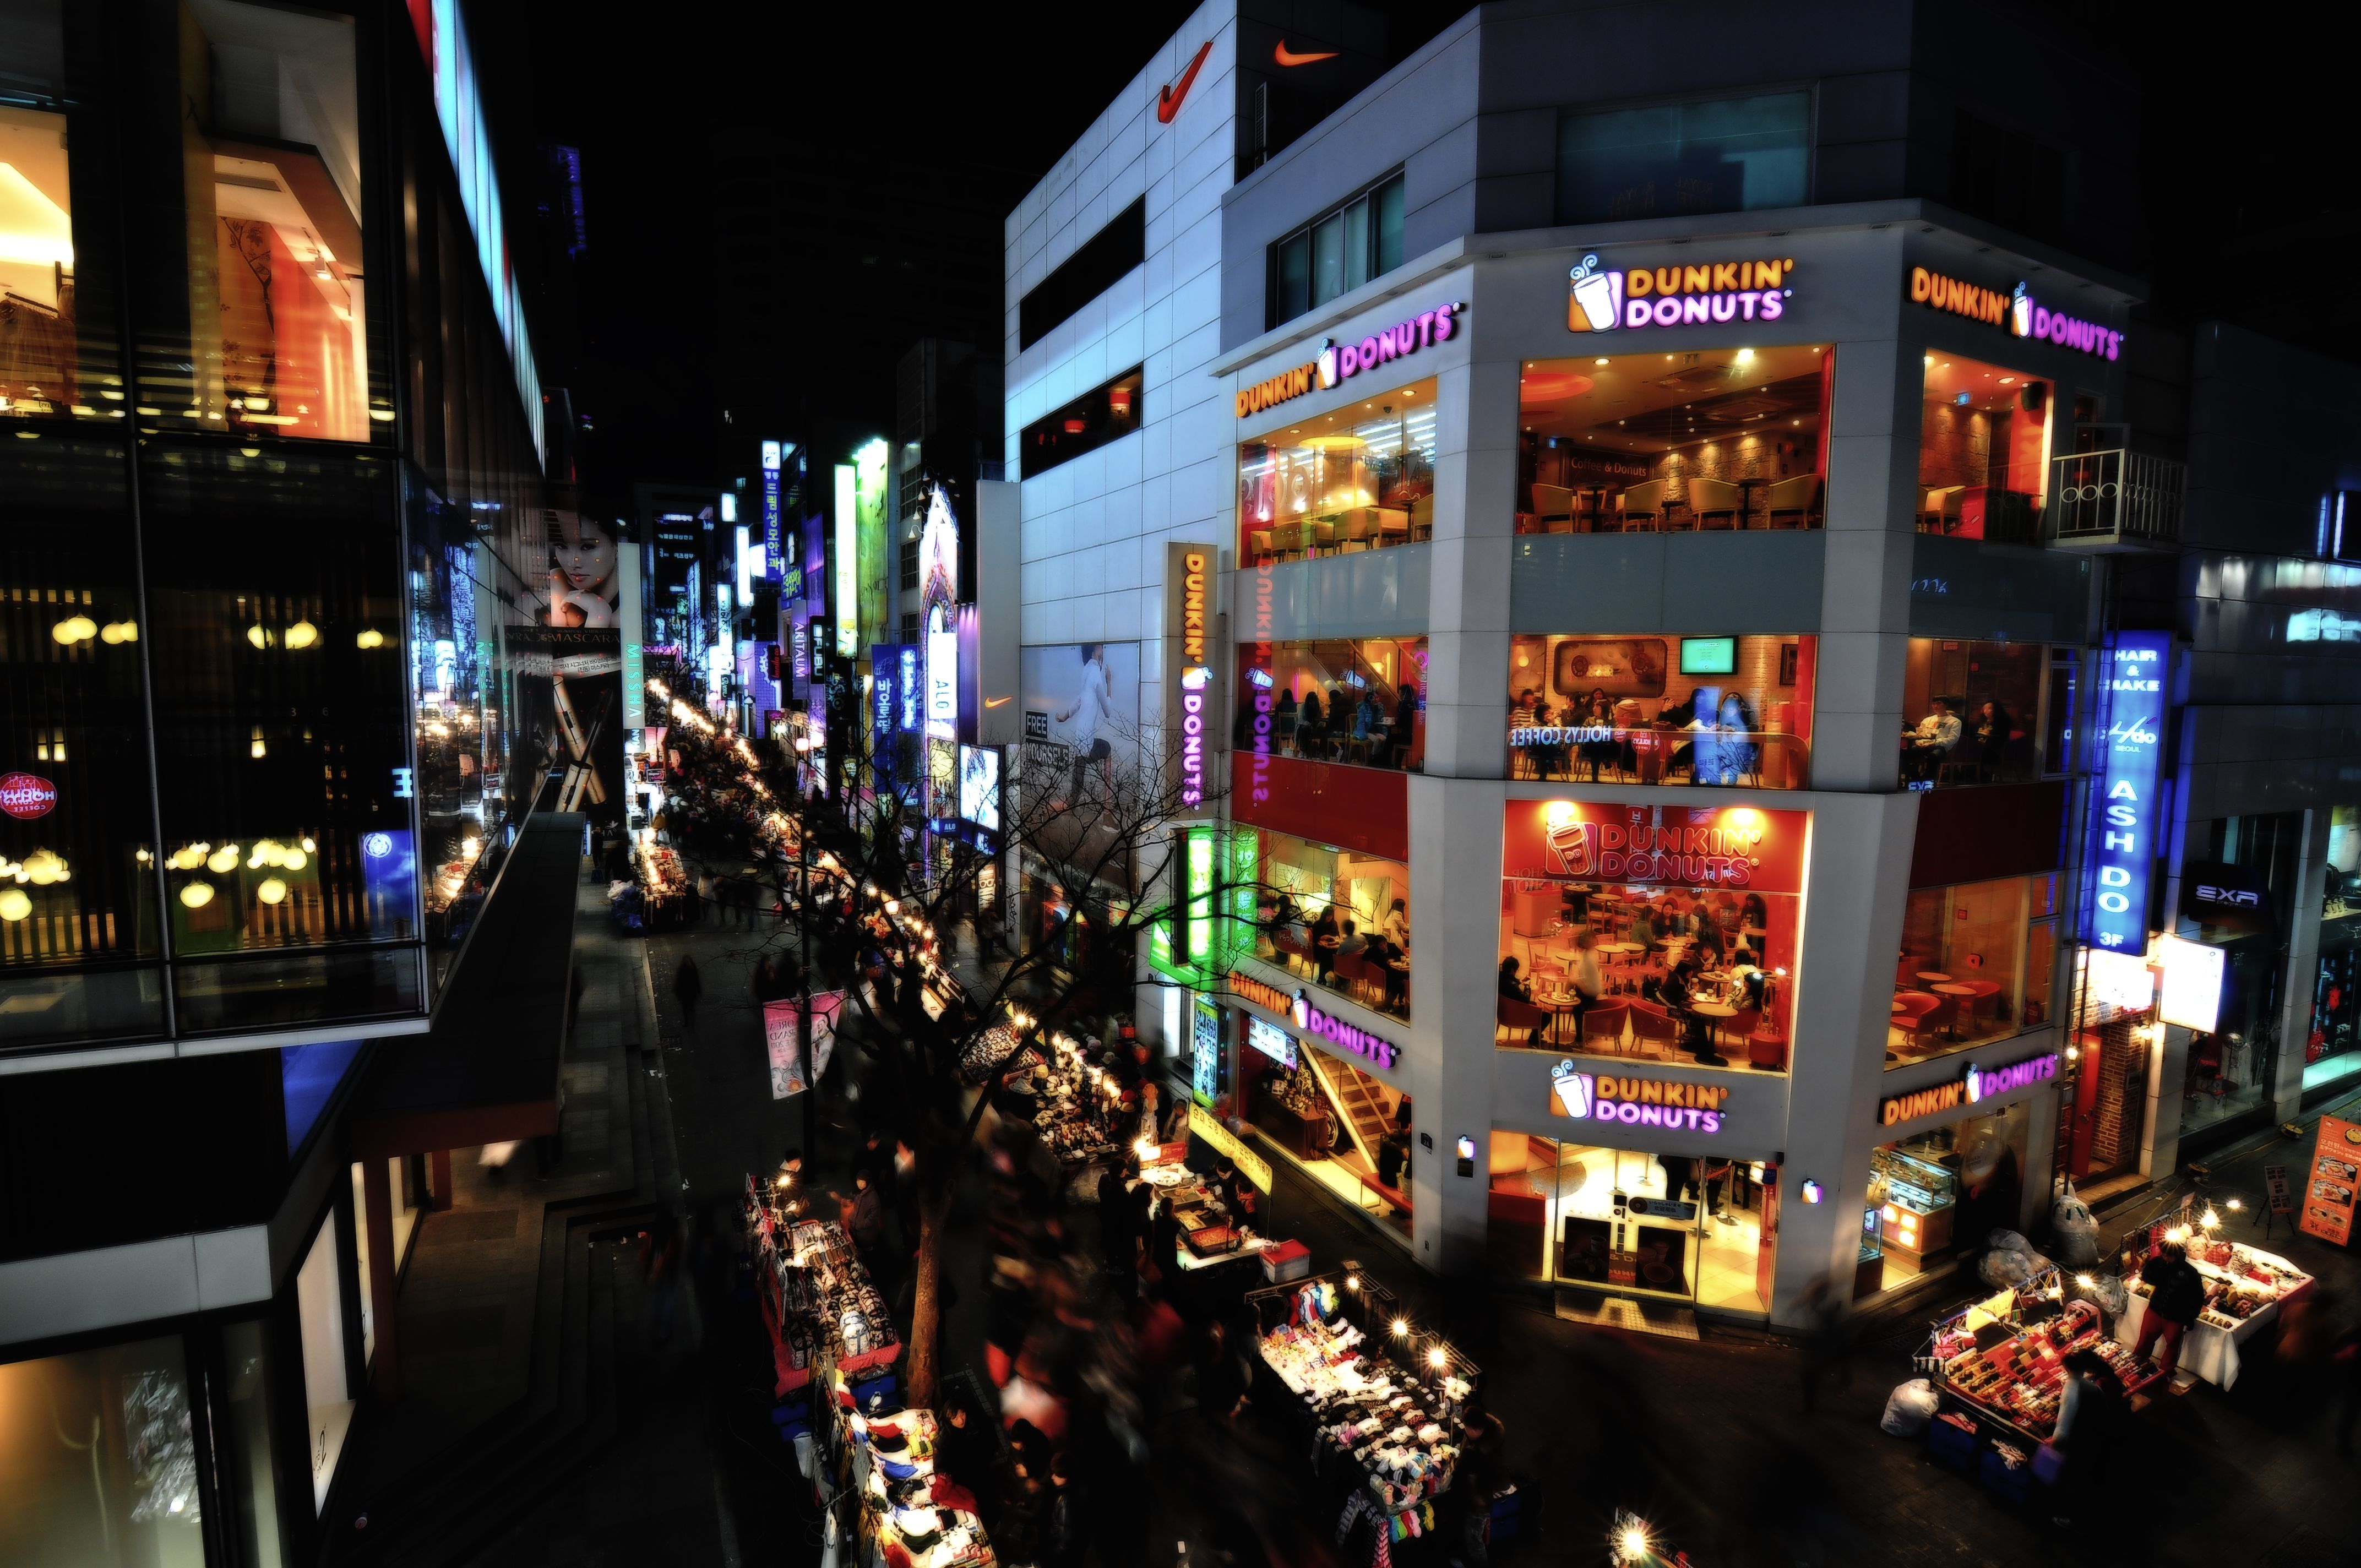 Myeong Dong Seoul I Want To Go Again Soon South Korea Seoul Night Market